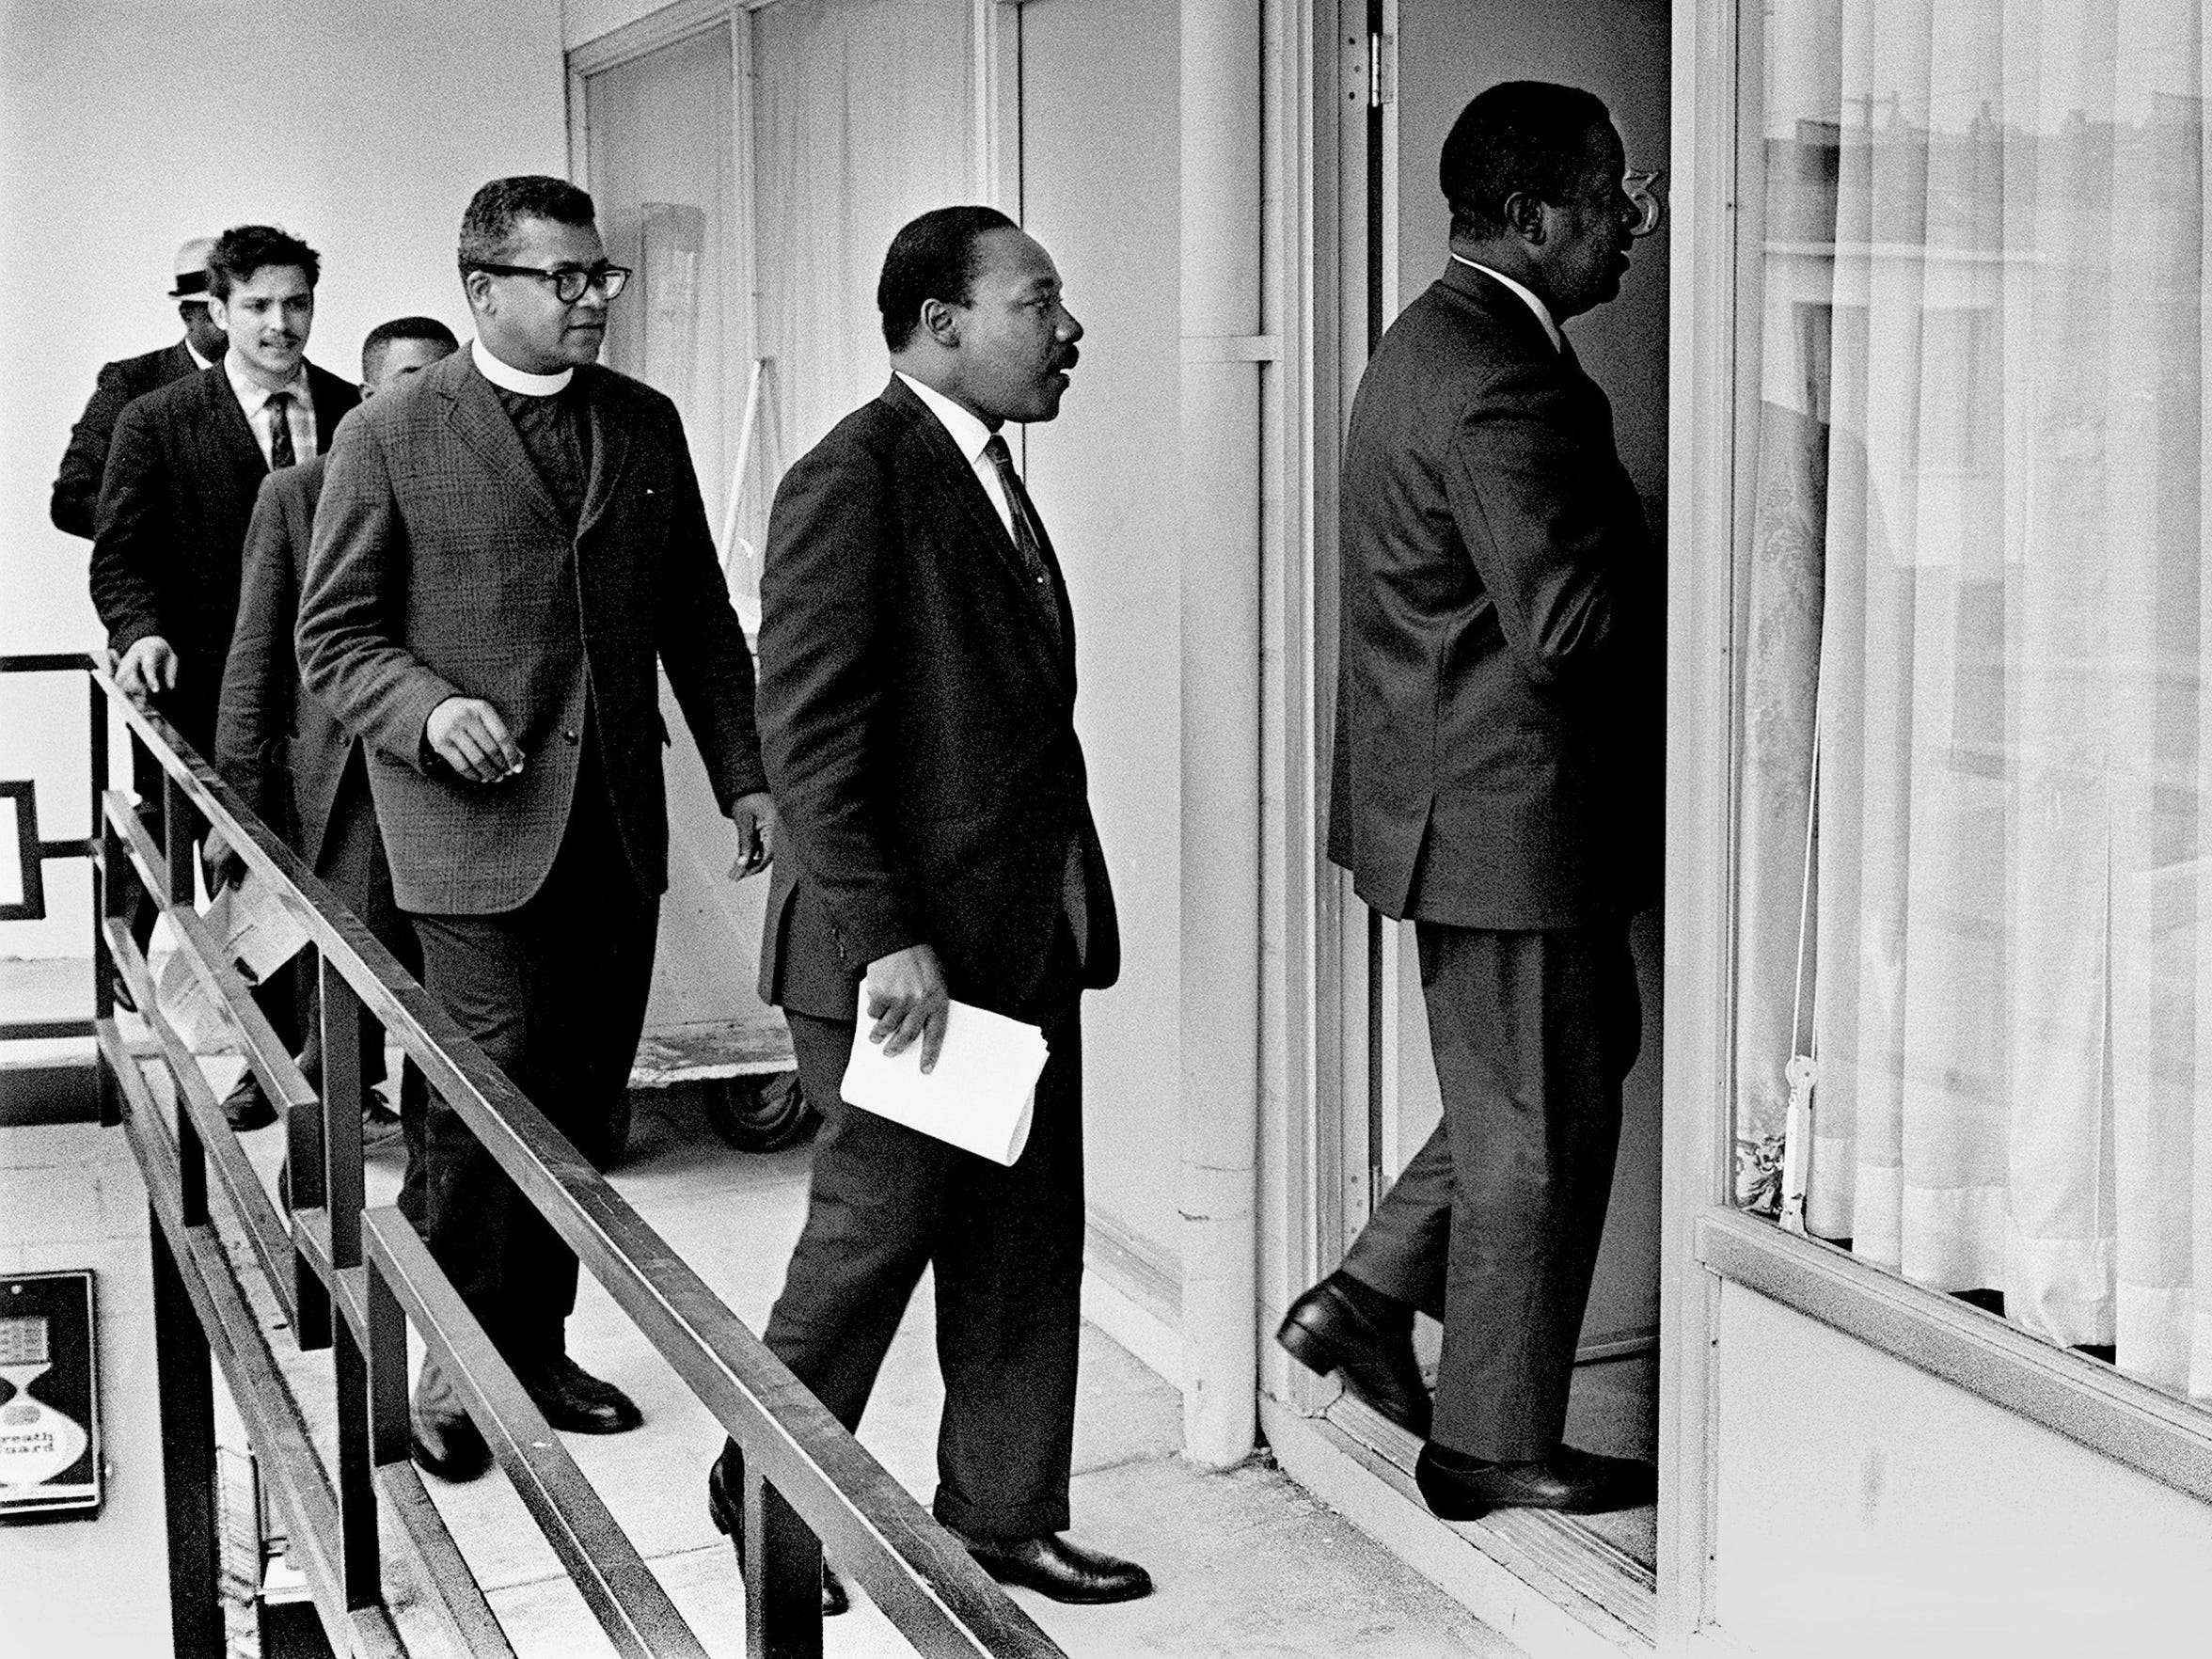 Rev. Ralph Abernathy led Dr. Martin Luther King Jr., Rev. James M. Lawson Jr. and others into Room 307 at the Lorraine Motel to discuss a restraining order barring another march in Memphis.